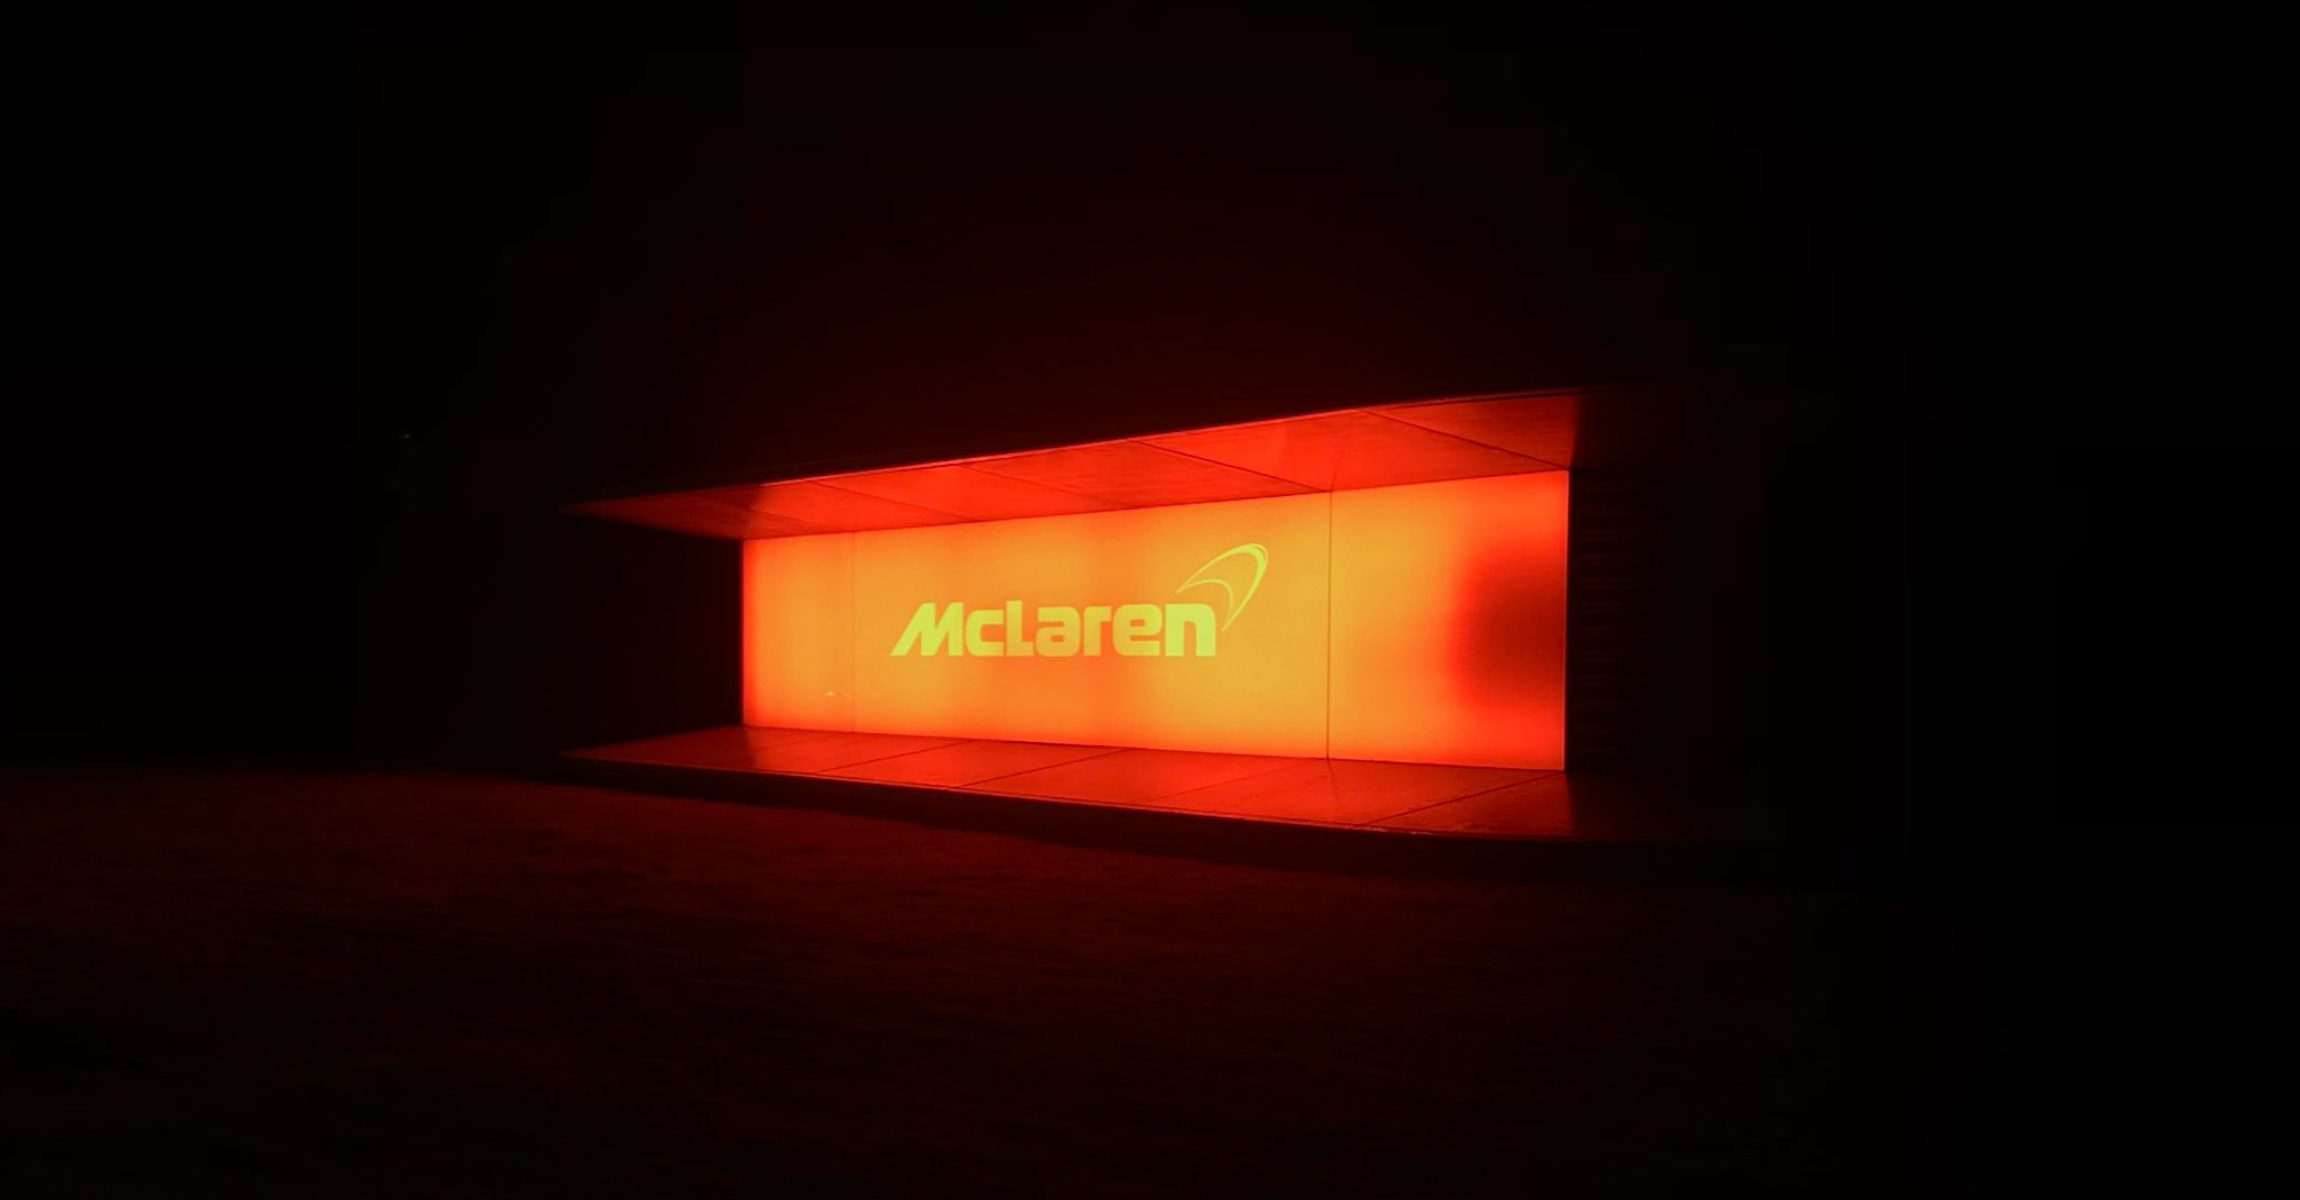 McLaren, launch, logo, sign, light